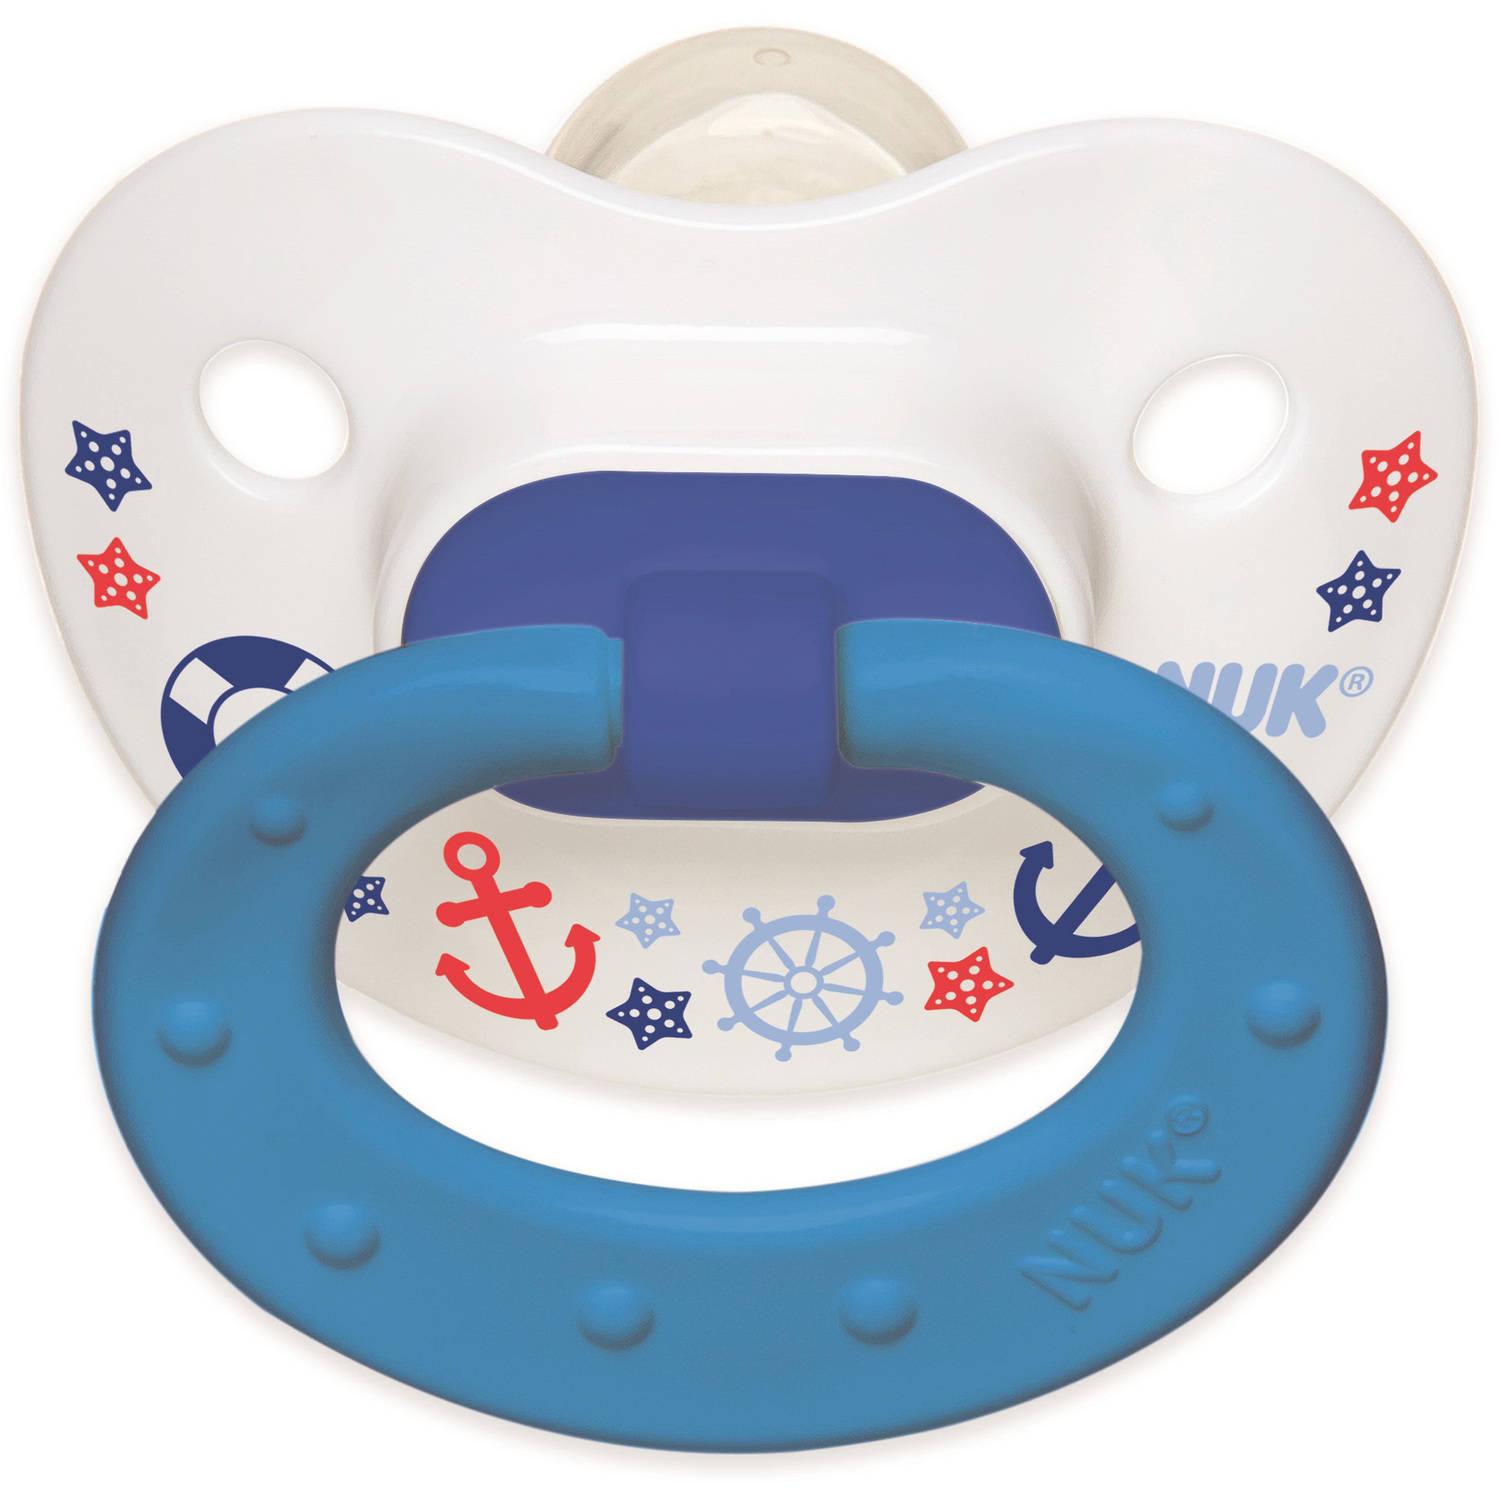 NUK Nautical Pacifiers, 2pk, Boy Colors